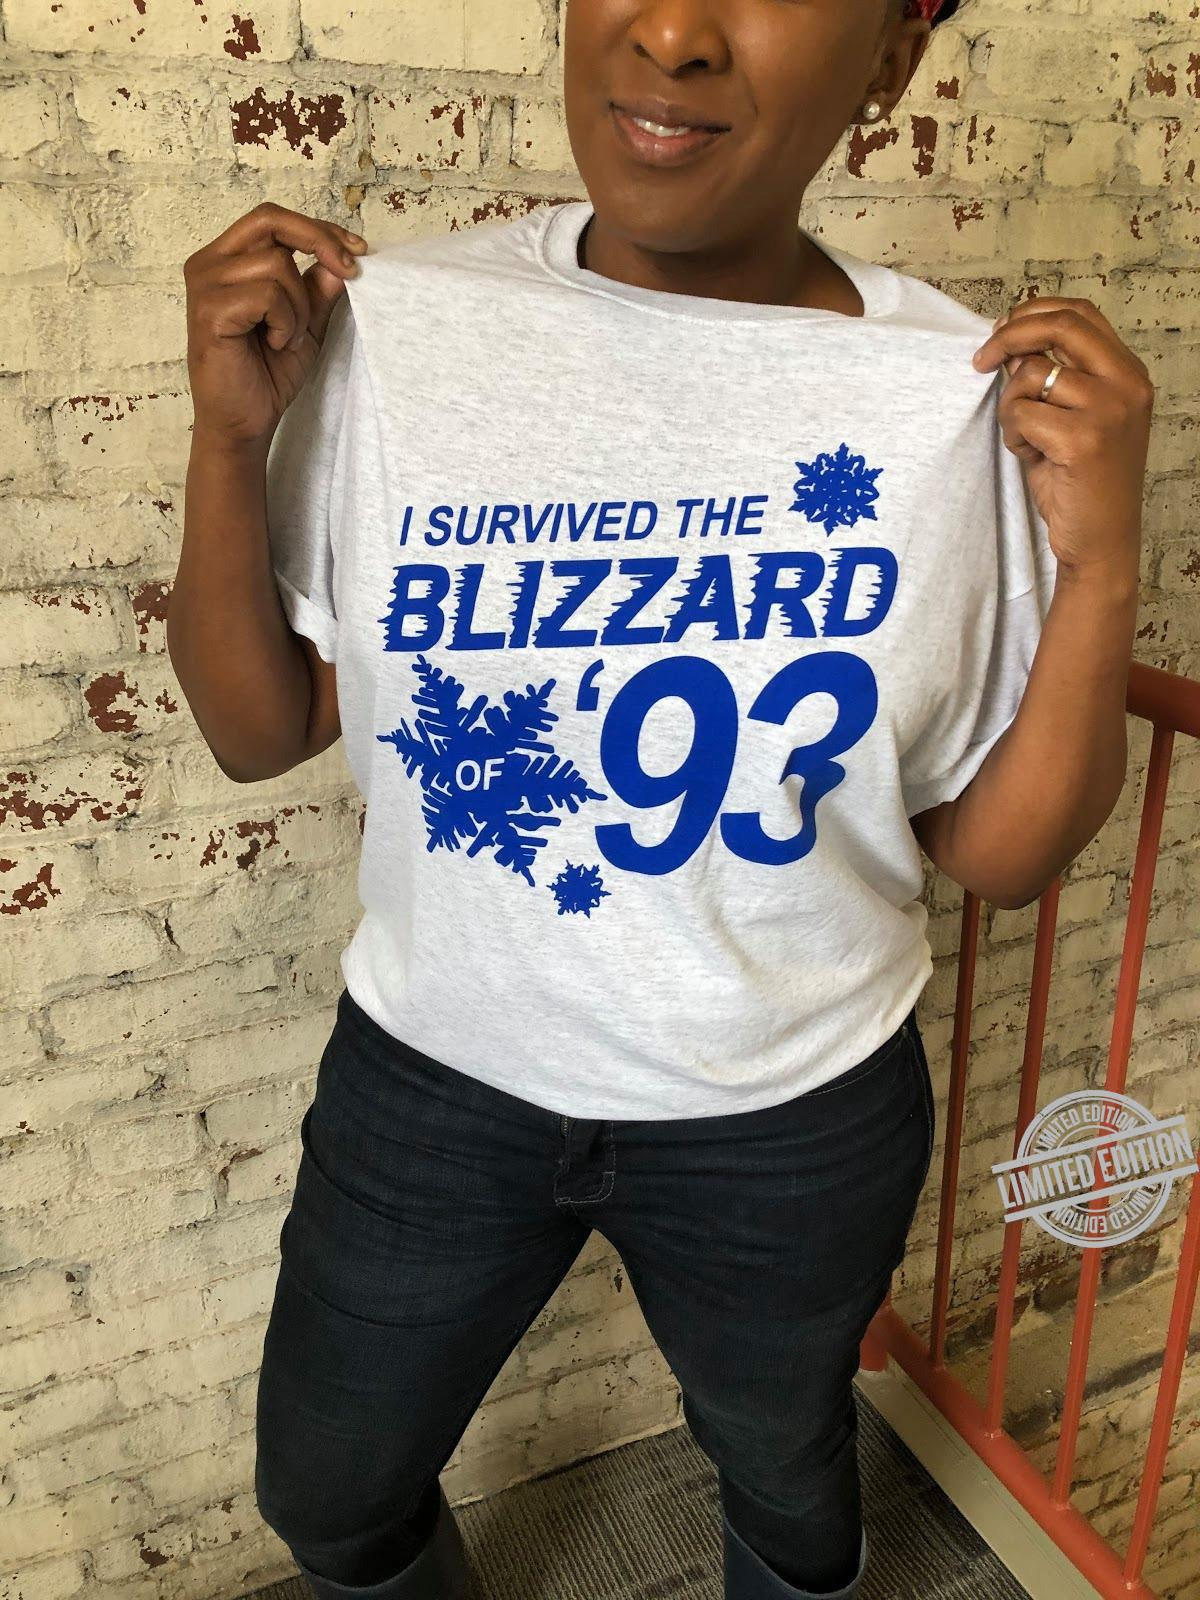 I Survived The Blizzard 93 Shirt